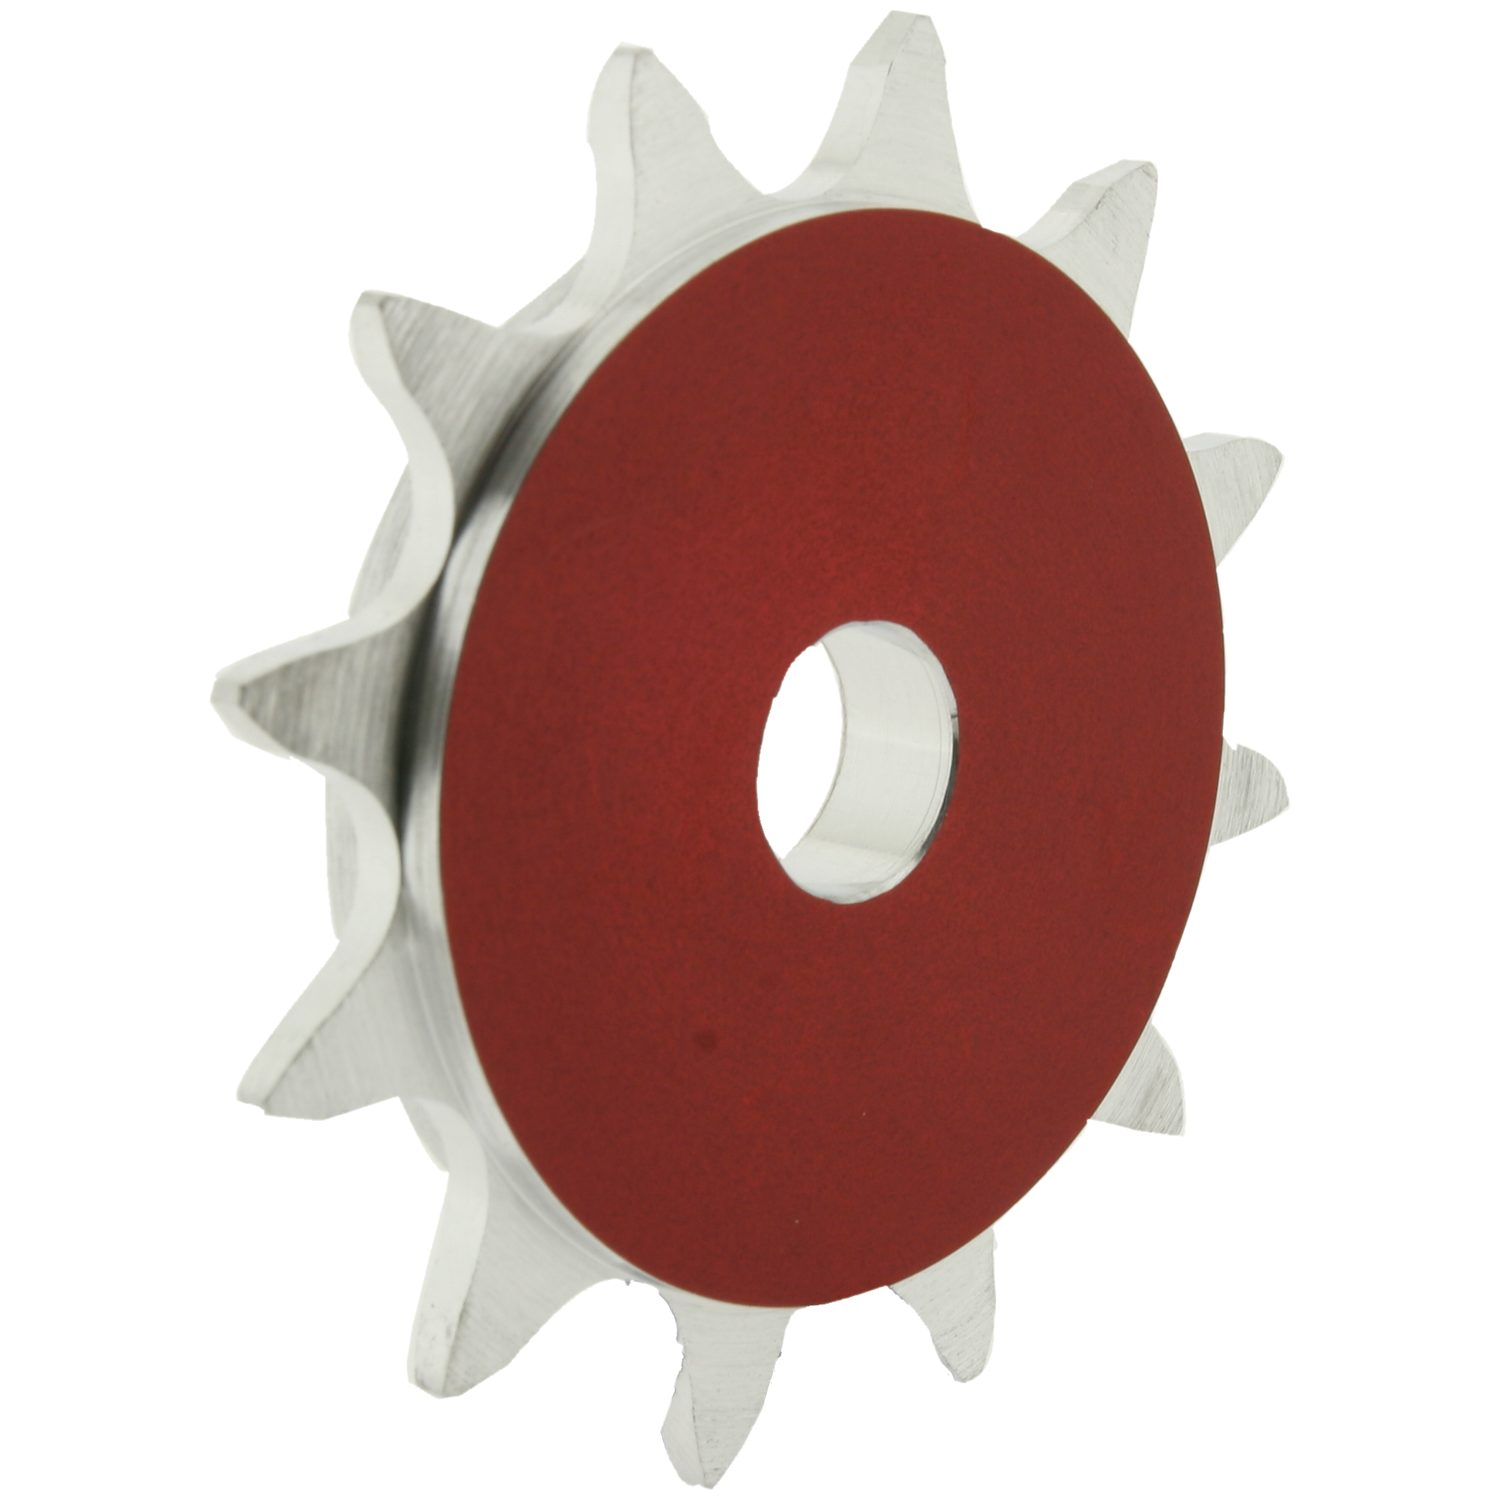 R1082 - Chain Sprockets - aluminium, hubless